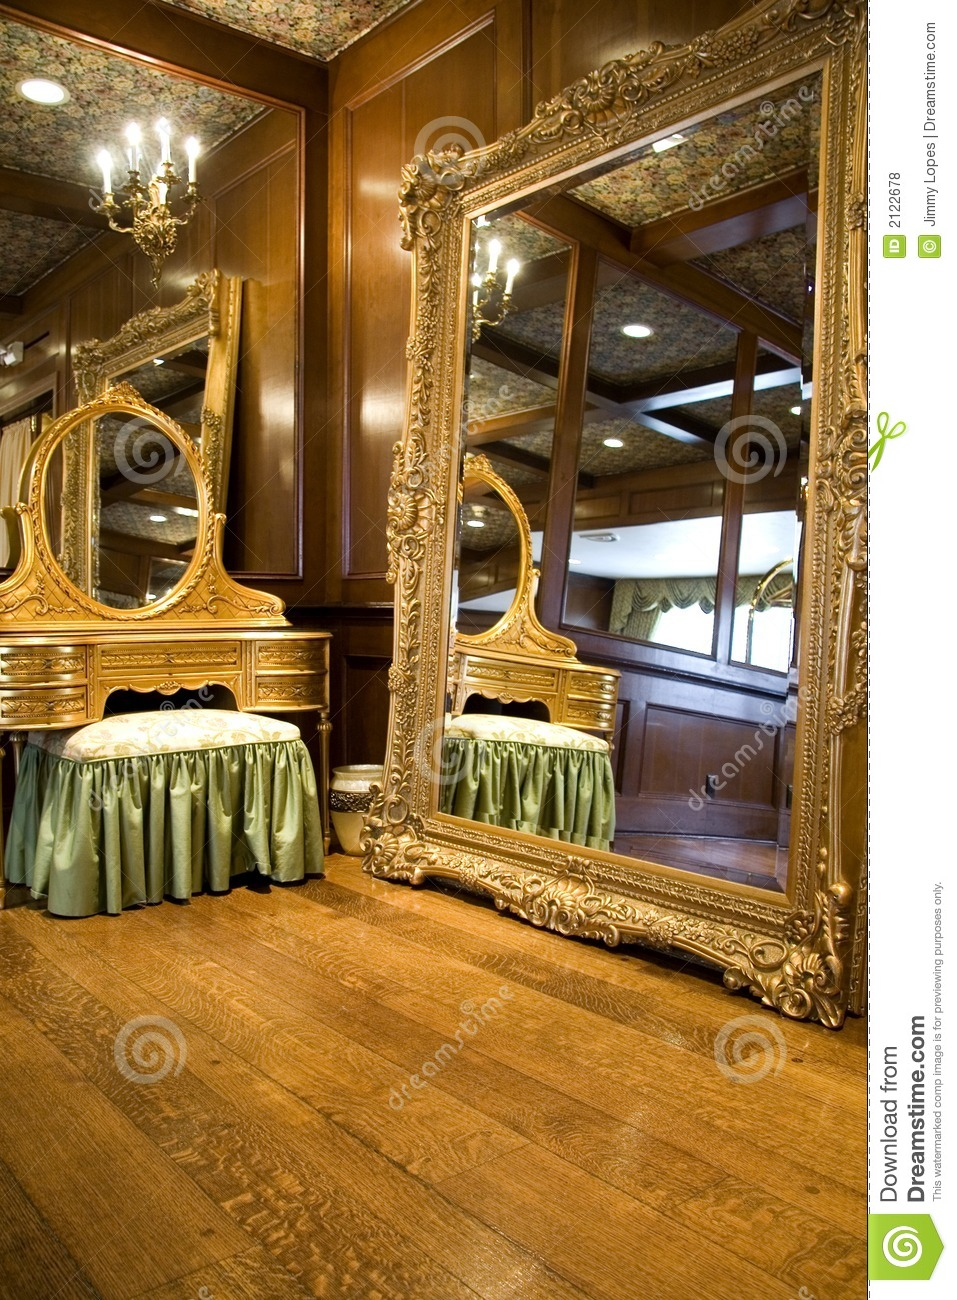 Antique Mirror And Dresser Royalty Free Stock Photos  Image 2122678